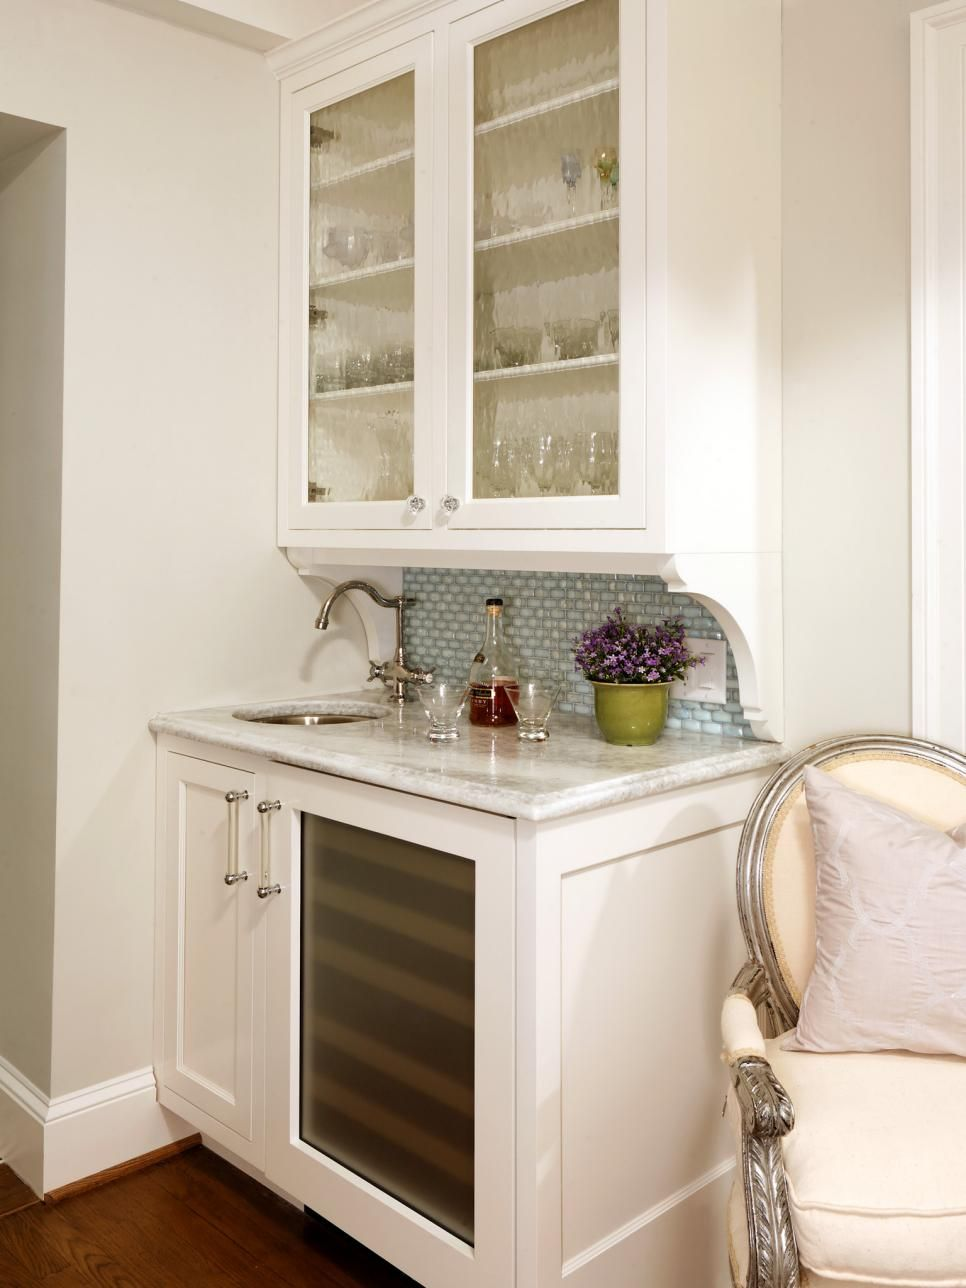 15 Stylish Small Home Bar Ideas | Pinterest | Wet bars, Custom ...